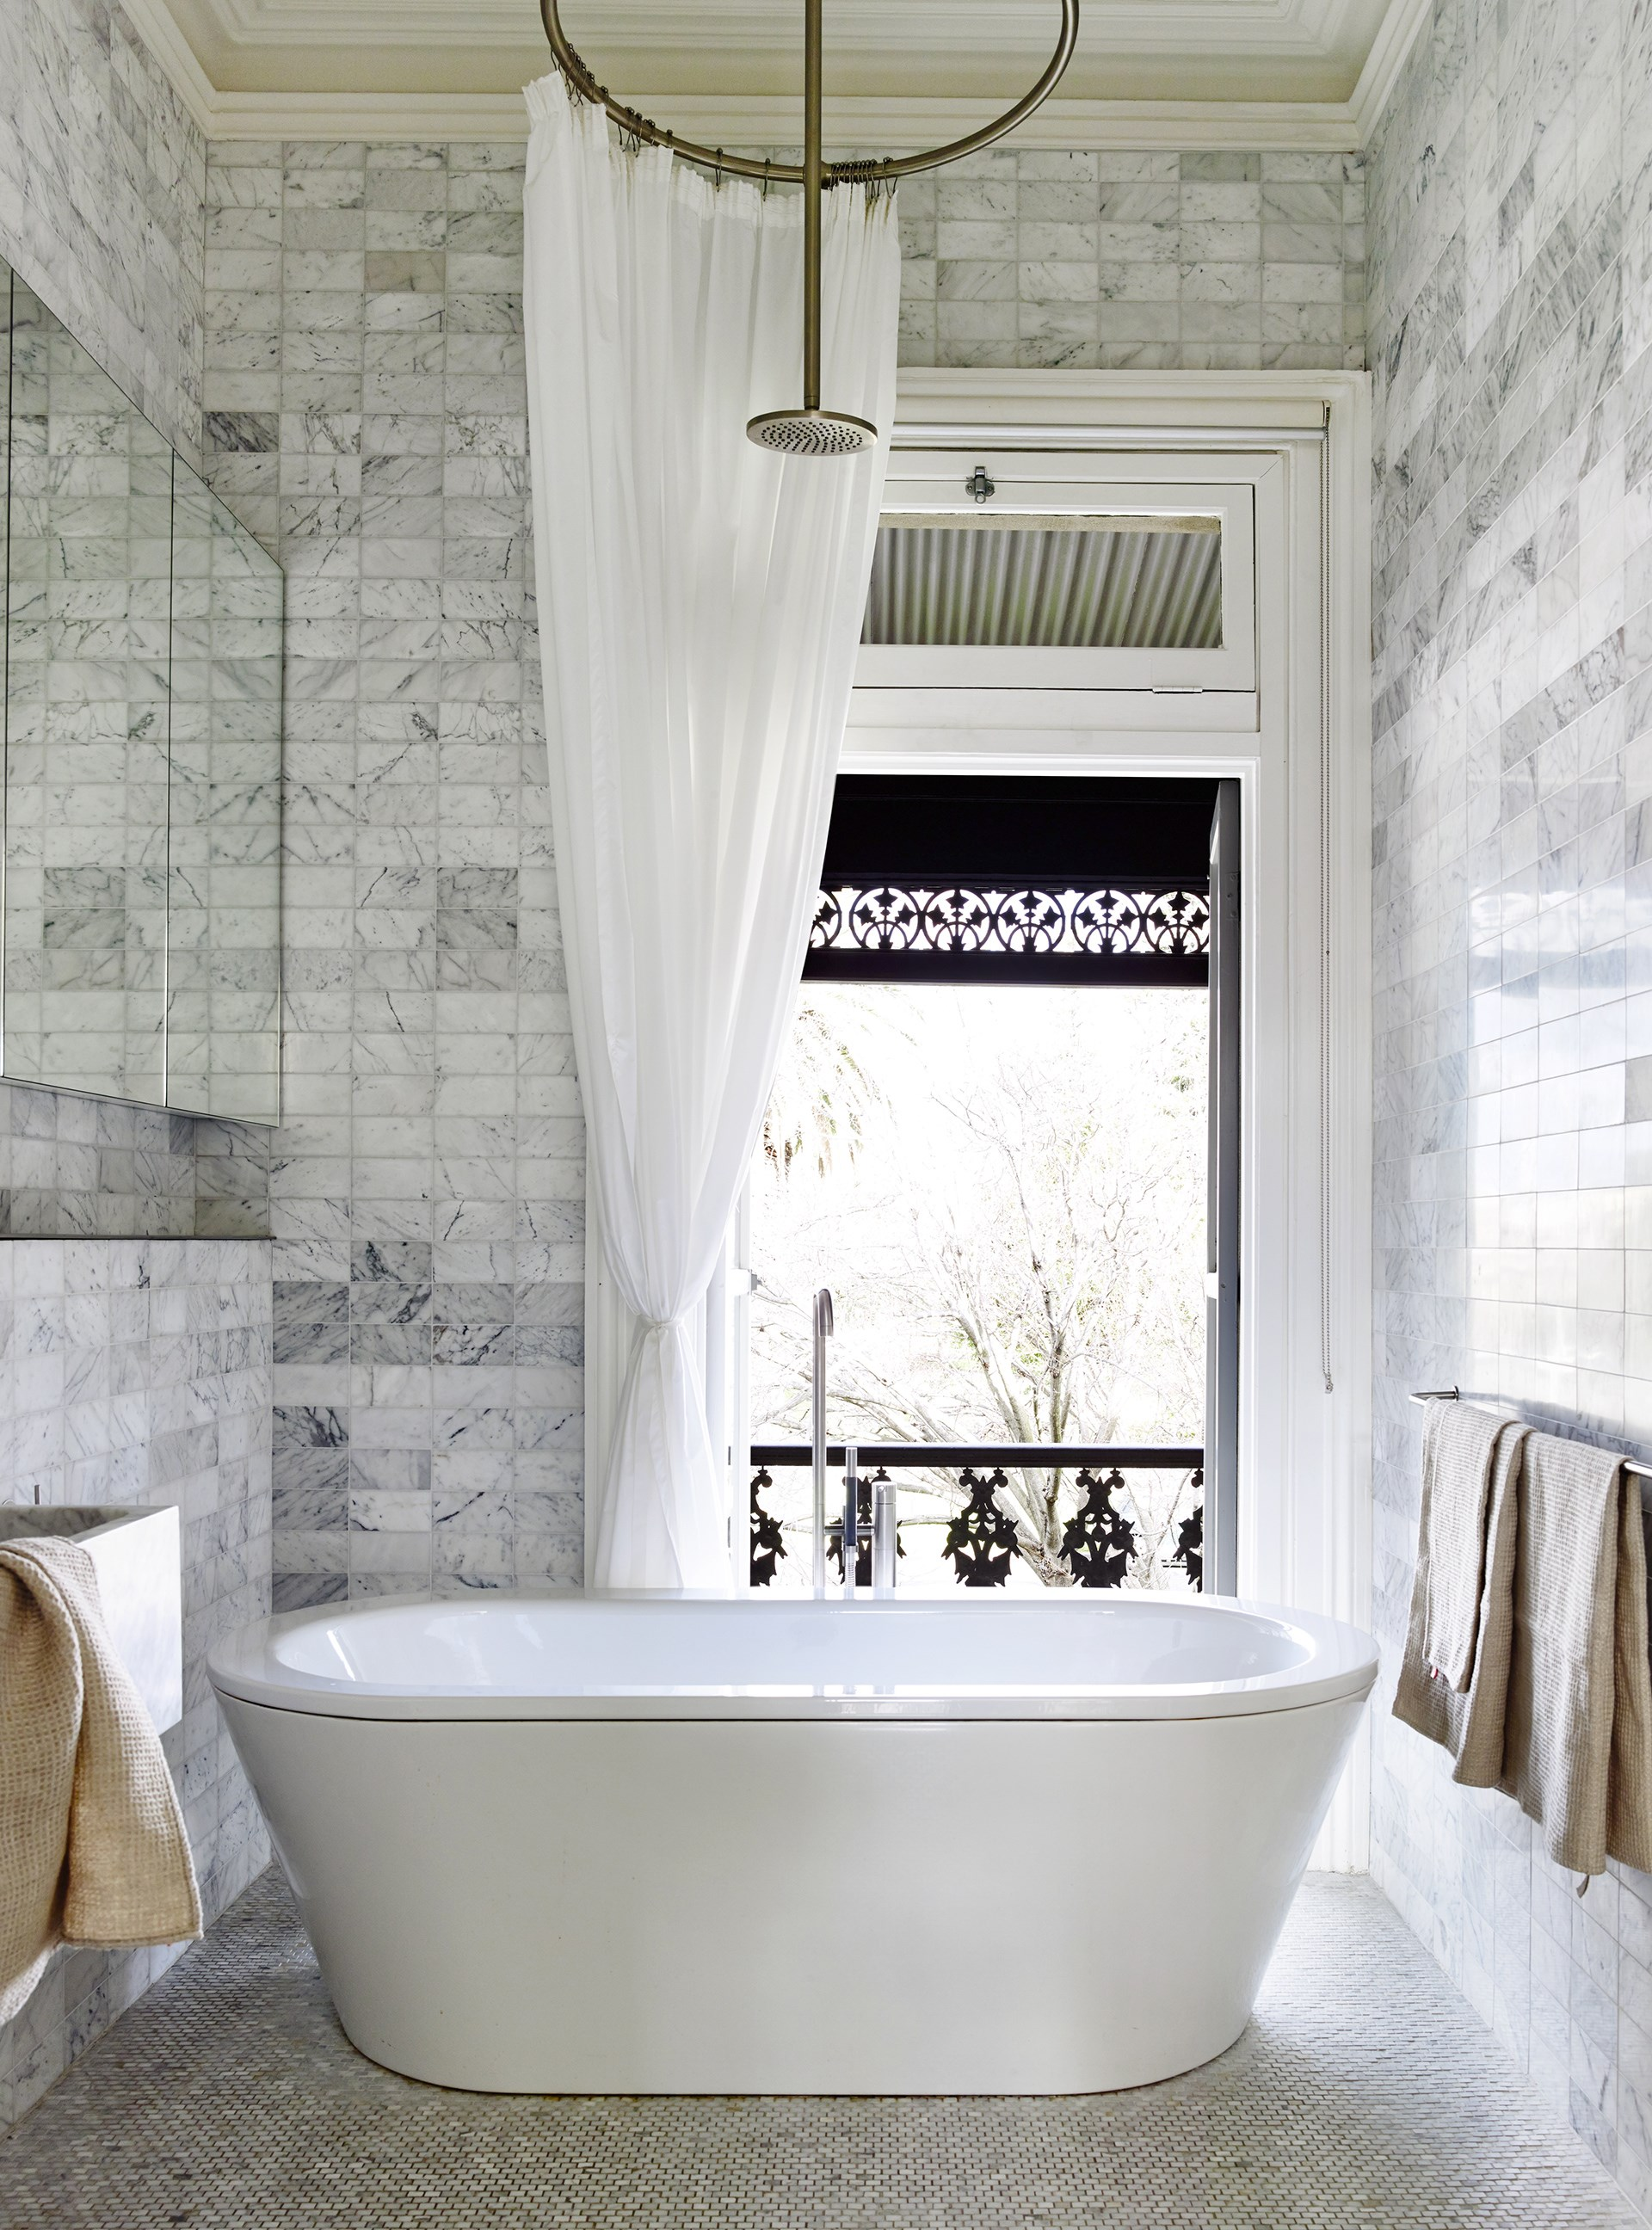 """Carrara marble tiles, French doors, plus a freestanding bath – there is a lot to love about this bathroom within a [Victorian-era terrace](http://www.homestolove.com.au/gallery-annick-and-stephens-chic-terrace-extension-2327